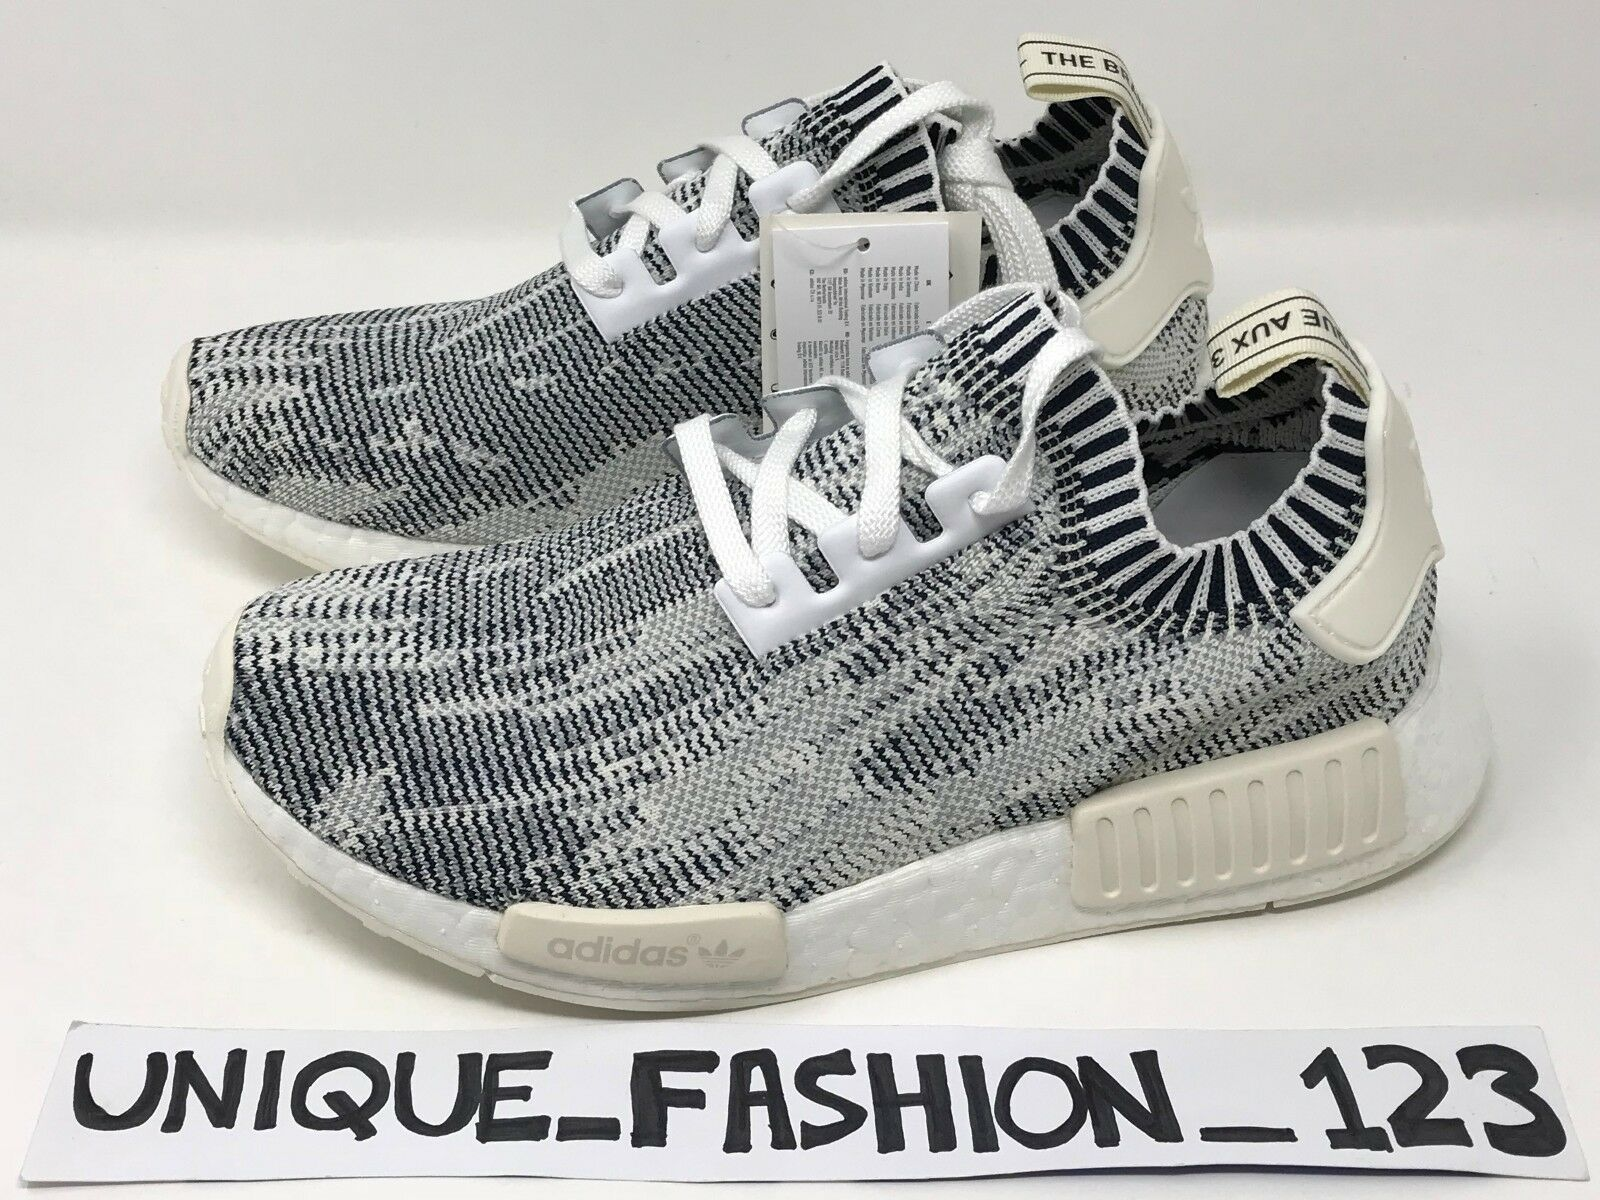 ADIDAS NMD R1 PRIMEKNIT GREY CAMO GLITCH CLEAR ONYX UK 6 7 8 9 10 RUNNER BOOST